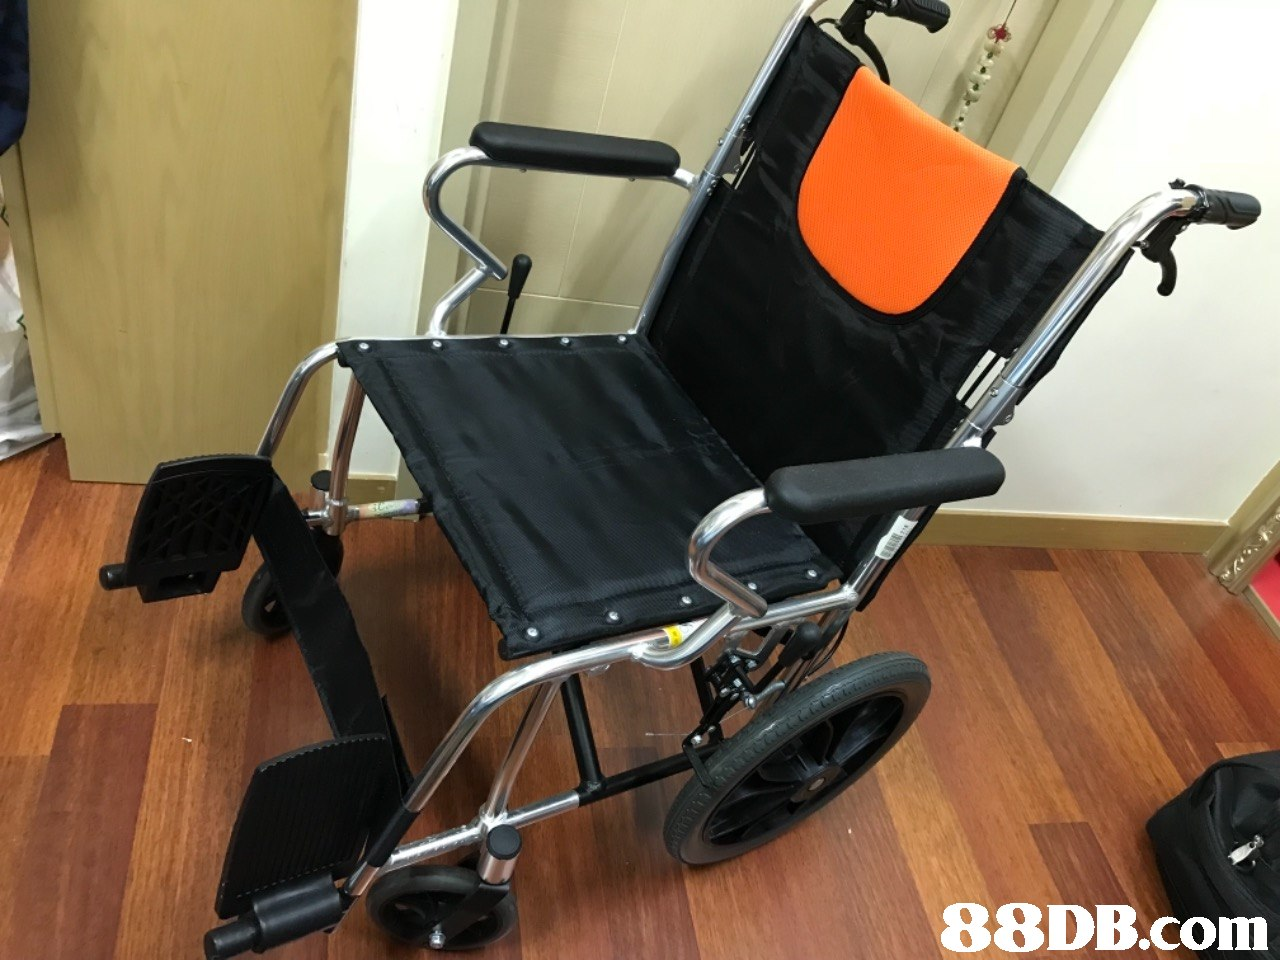 product,chair,wheelchair,furniture,office chair